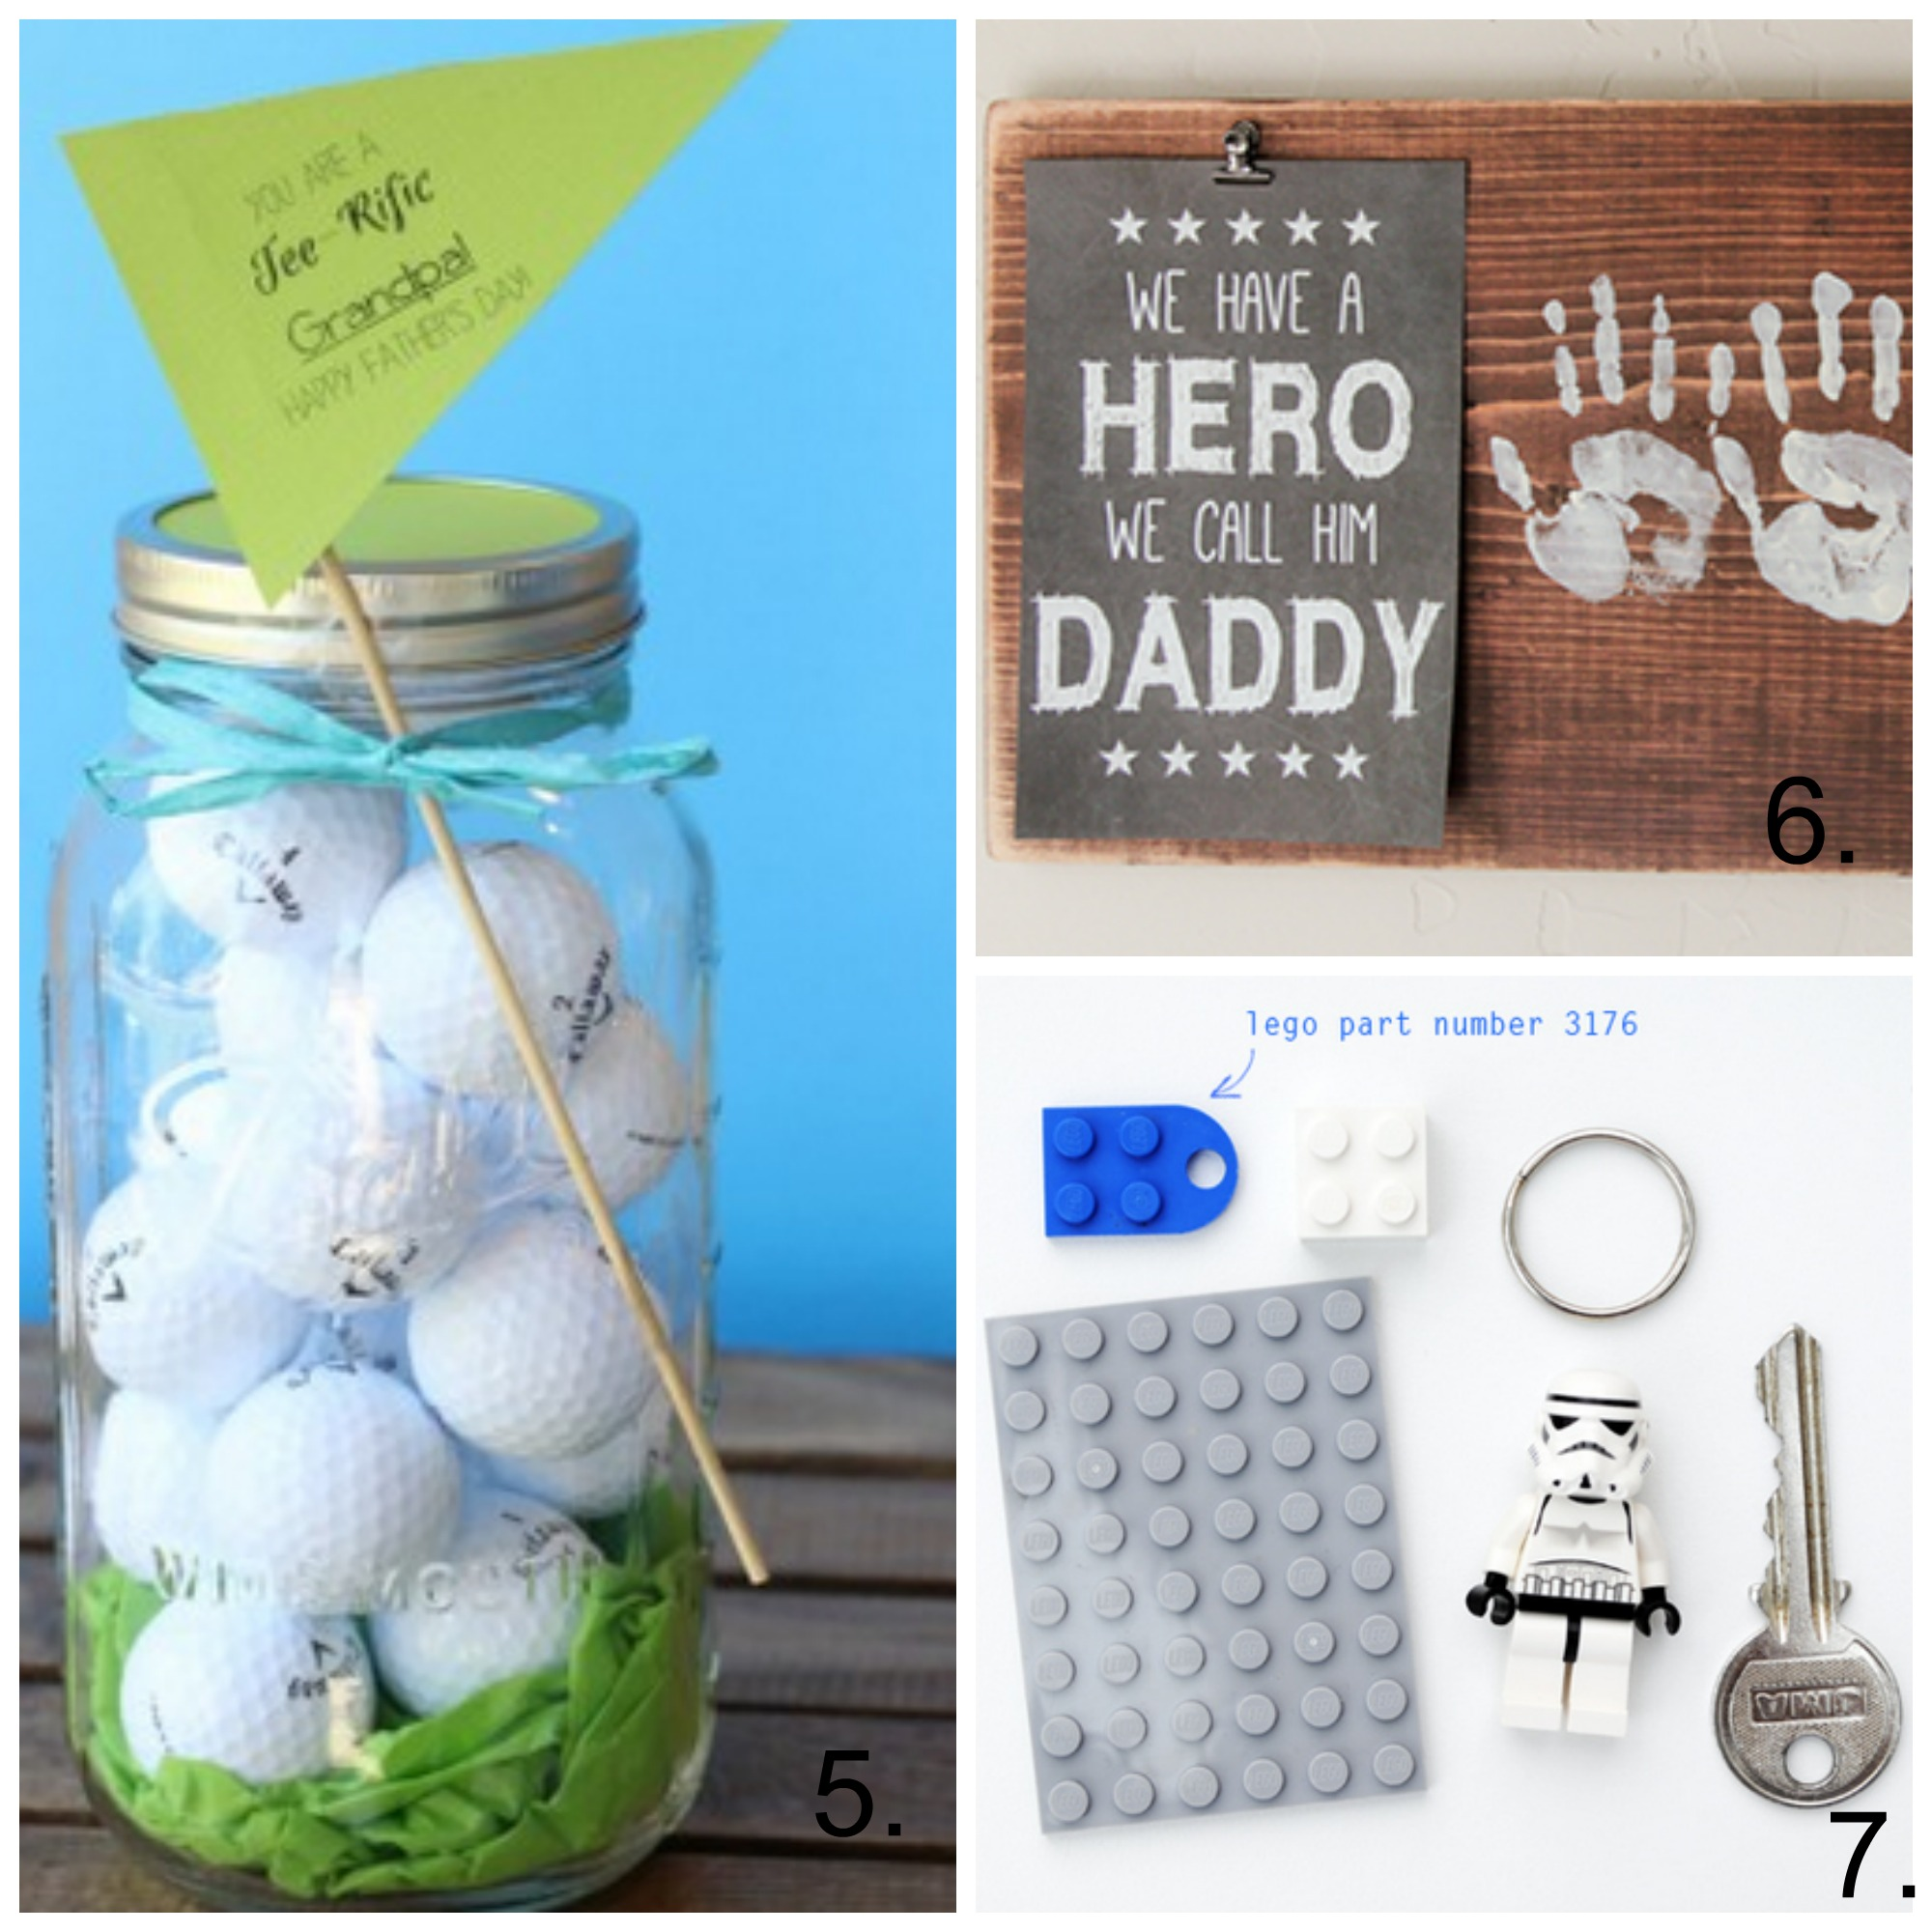 20 creative fathers day gift ideas my frugal adventures 20 creative fathers day gift ideas negle Image collections